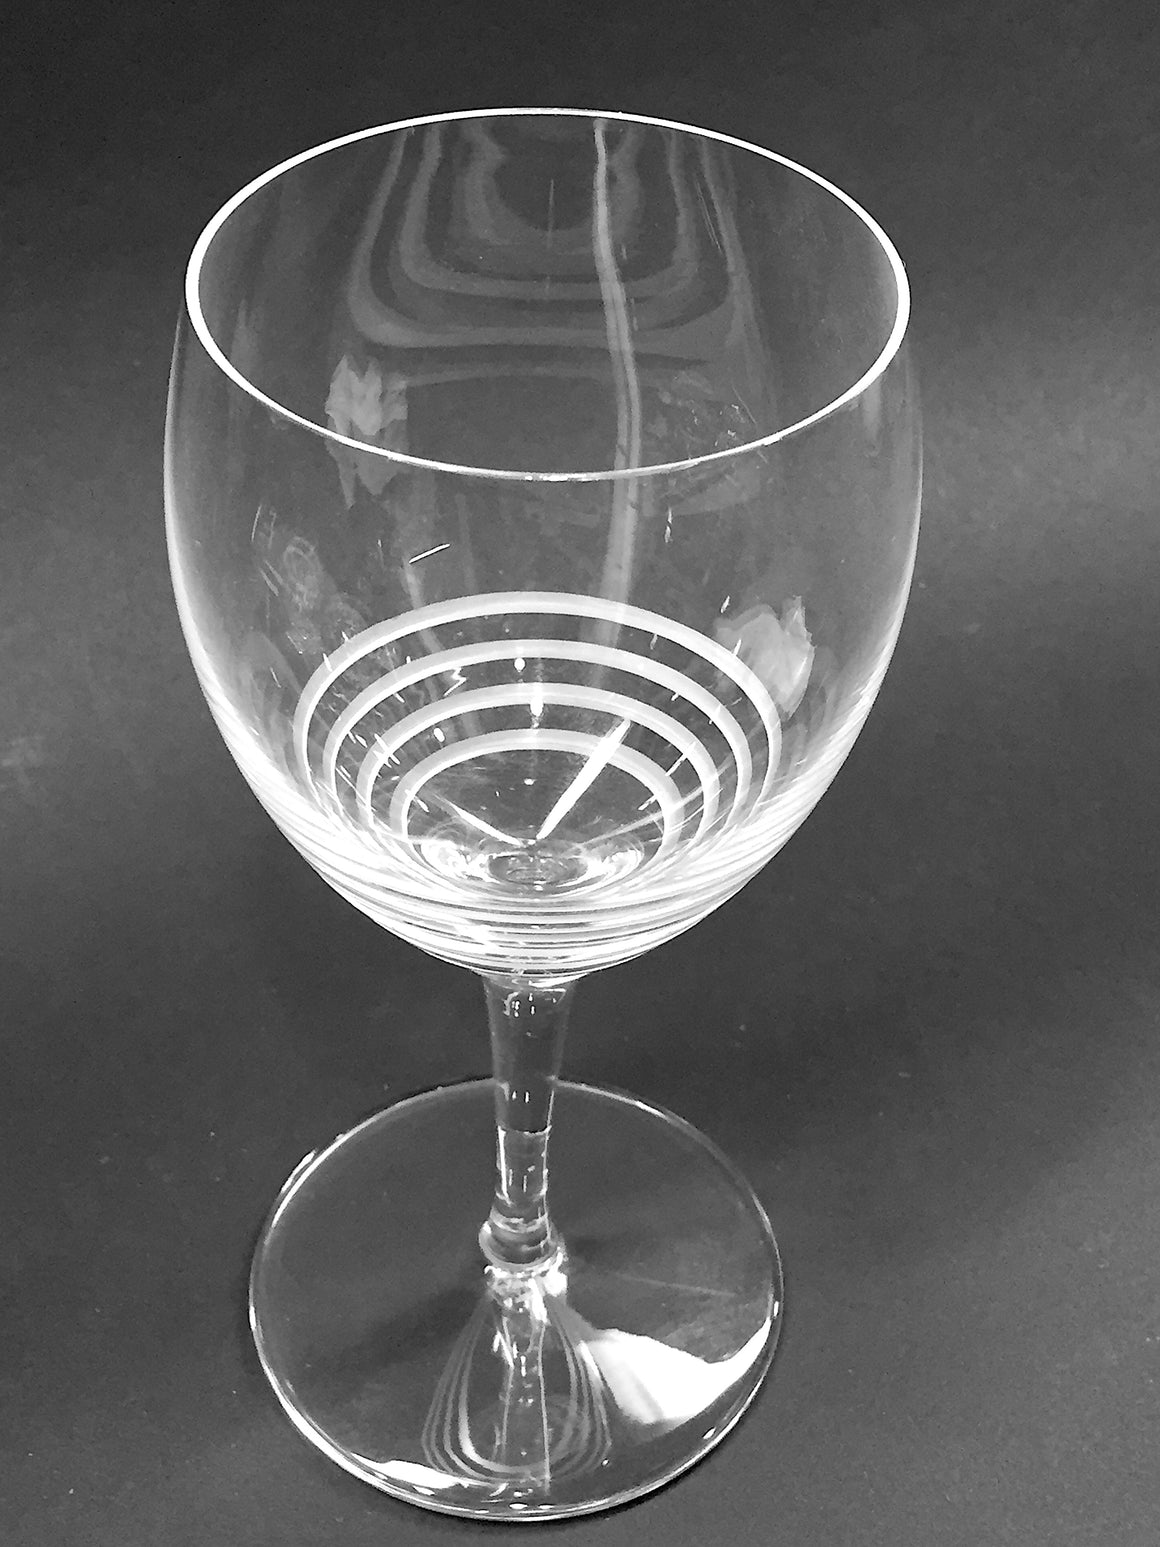 HERMES Clear Crystal Etched Concentric Circles Wine Glass